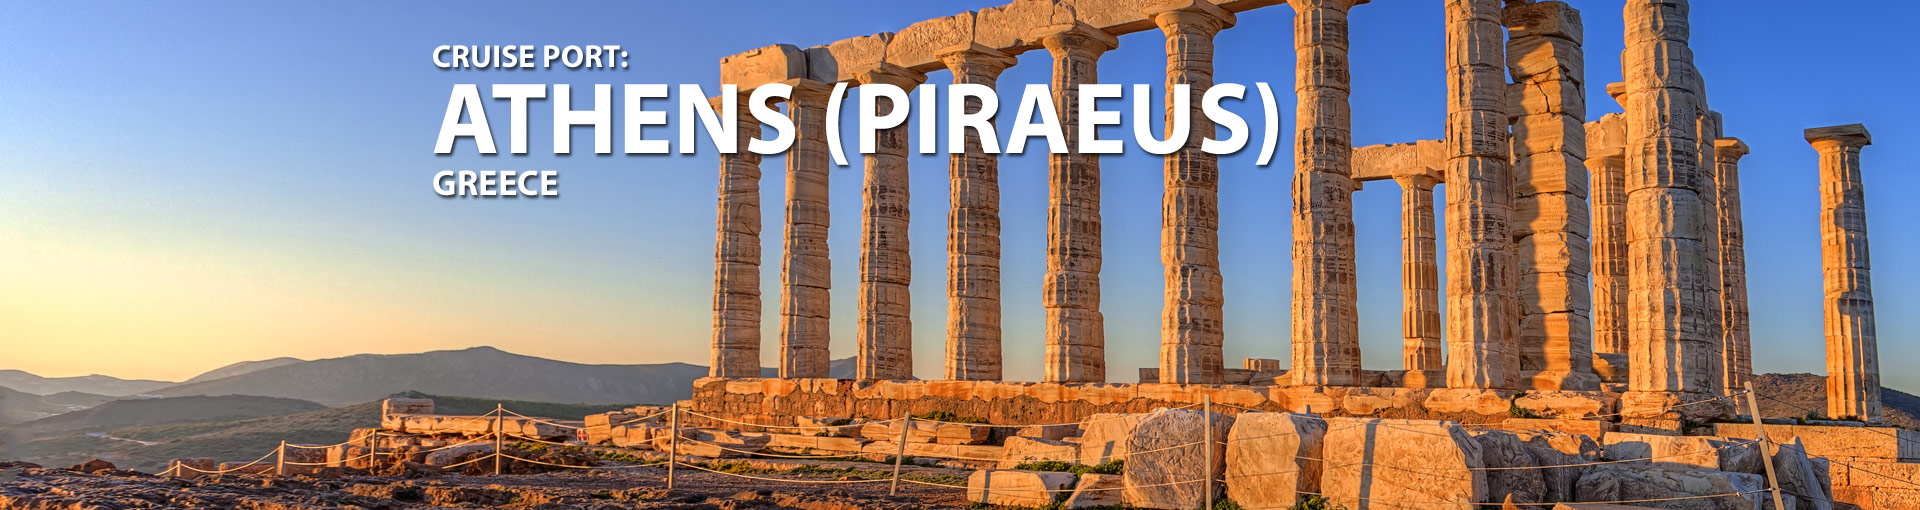 Cruises from Piraeus, Athens, Greece